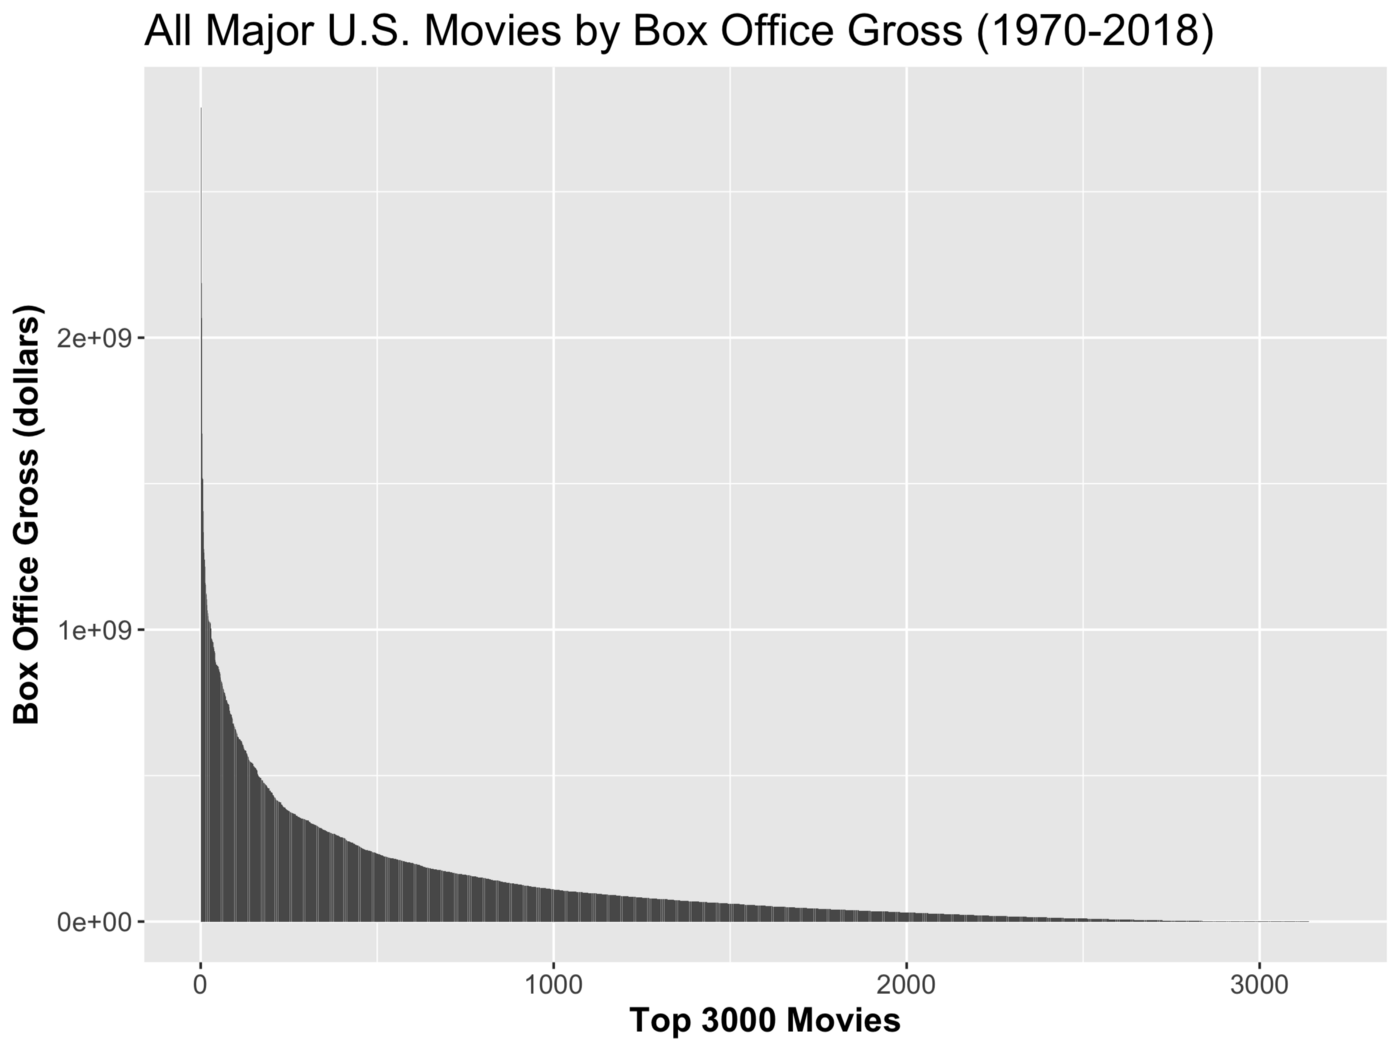 Movie box office collections follow a power law.